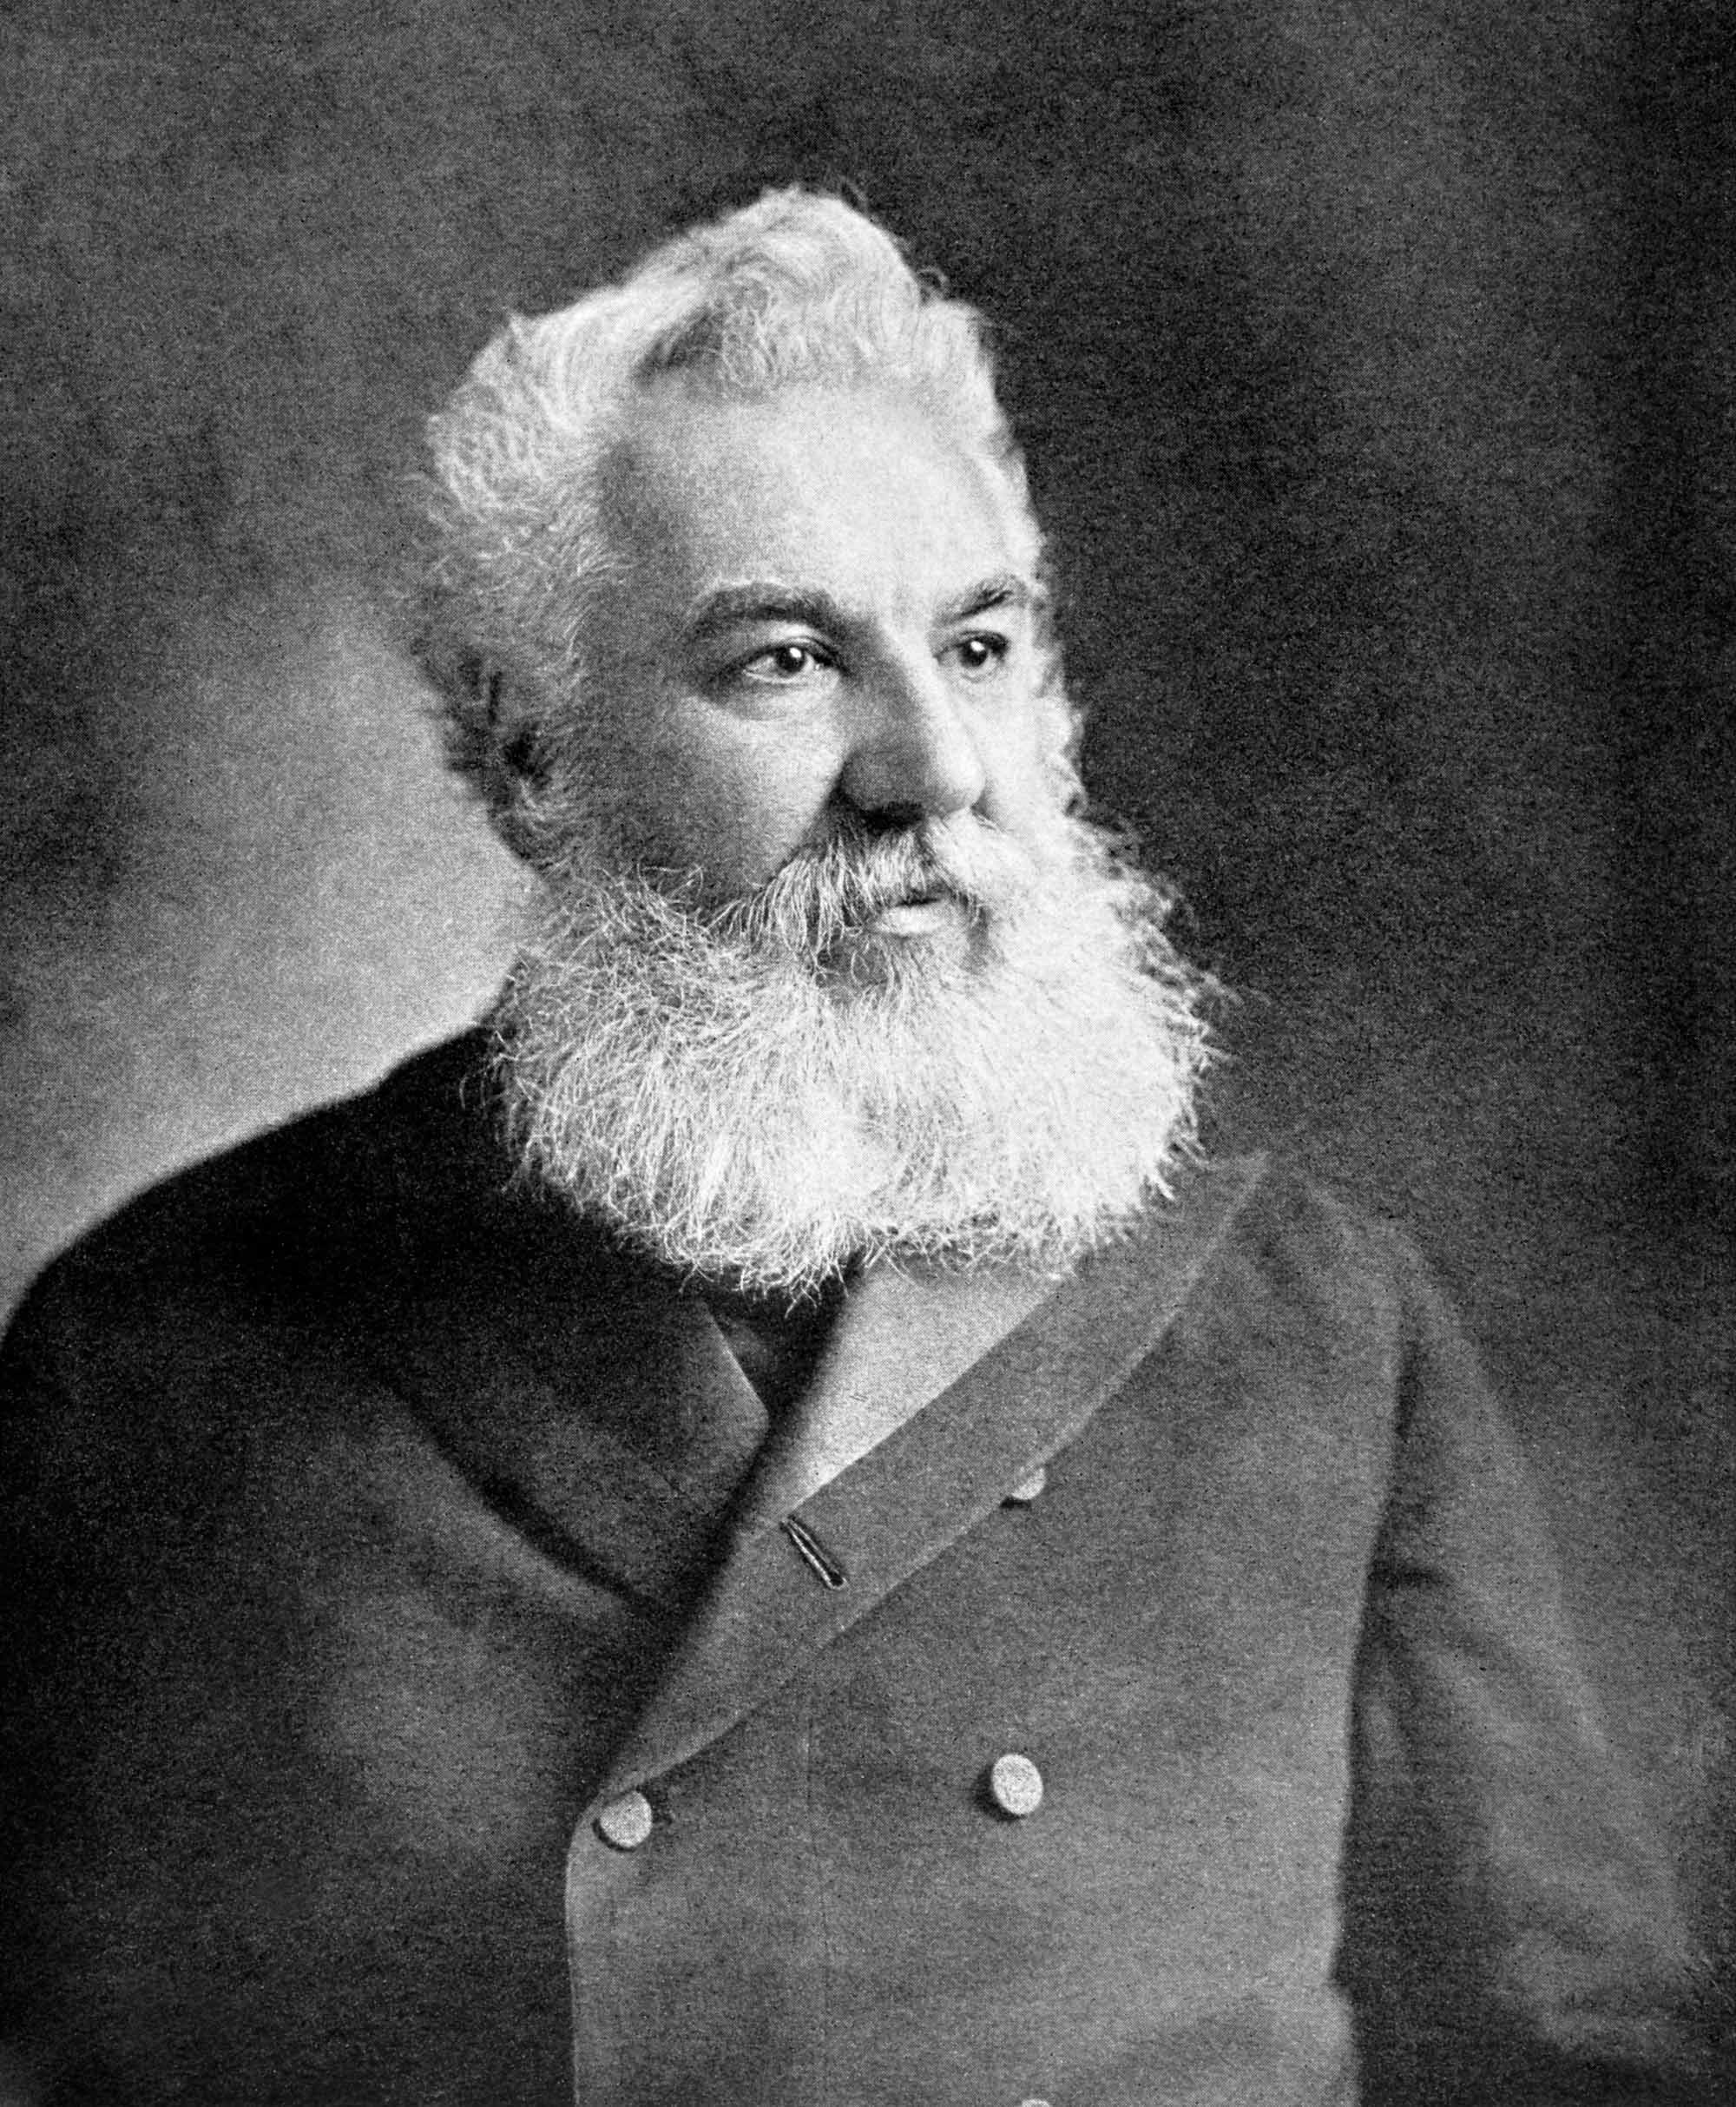 Alexander Graham Bell, pionnier de l'aviation